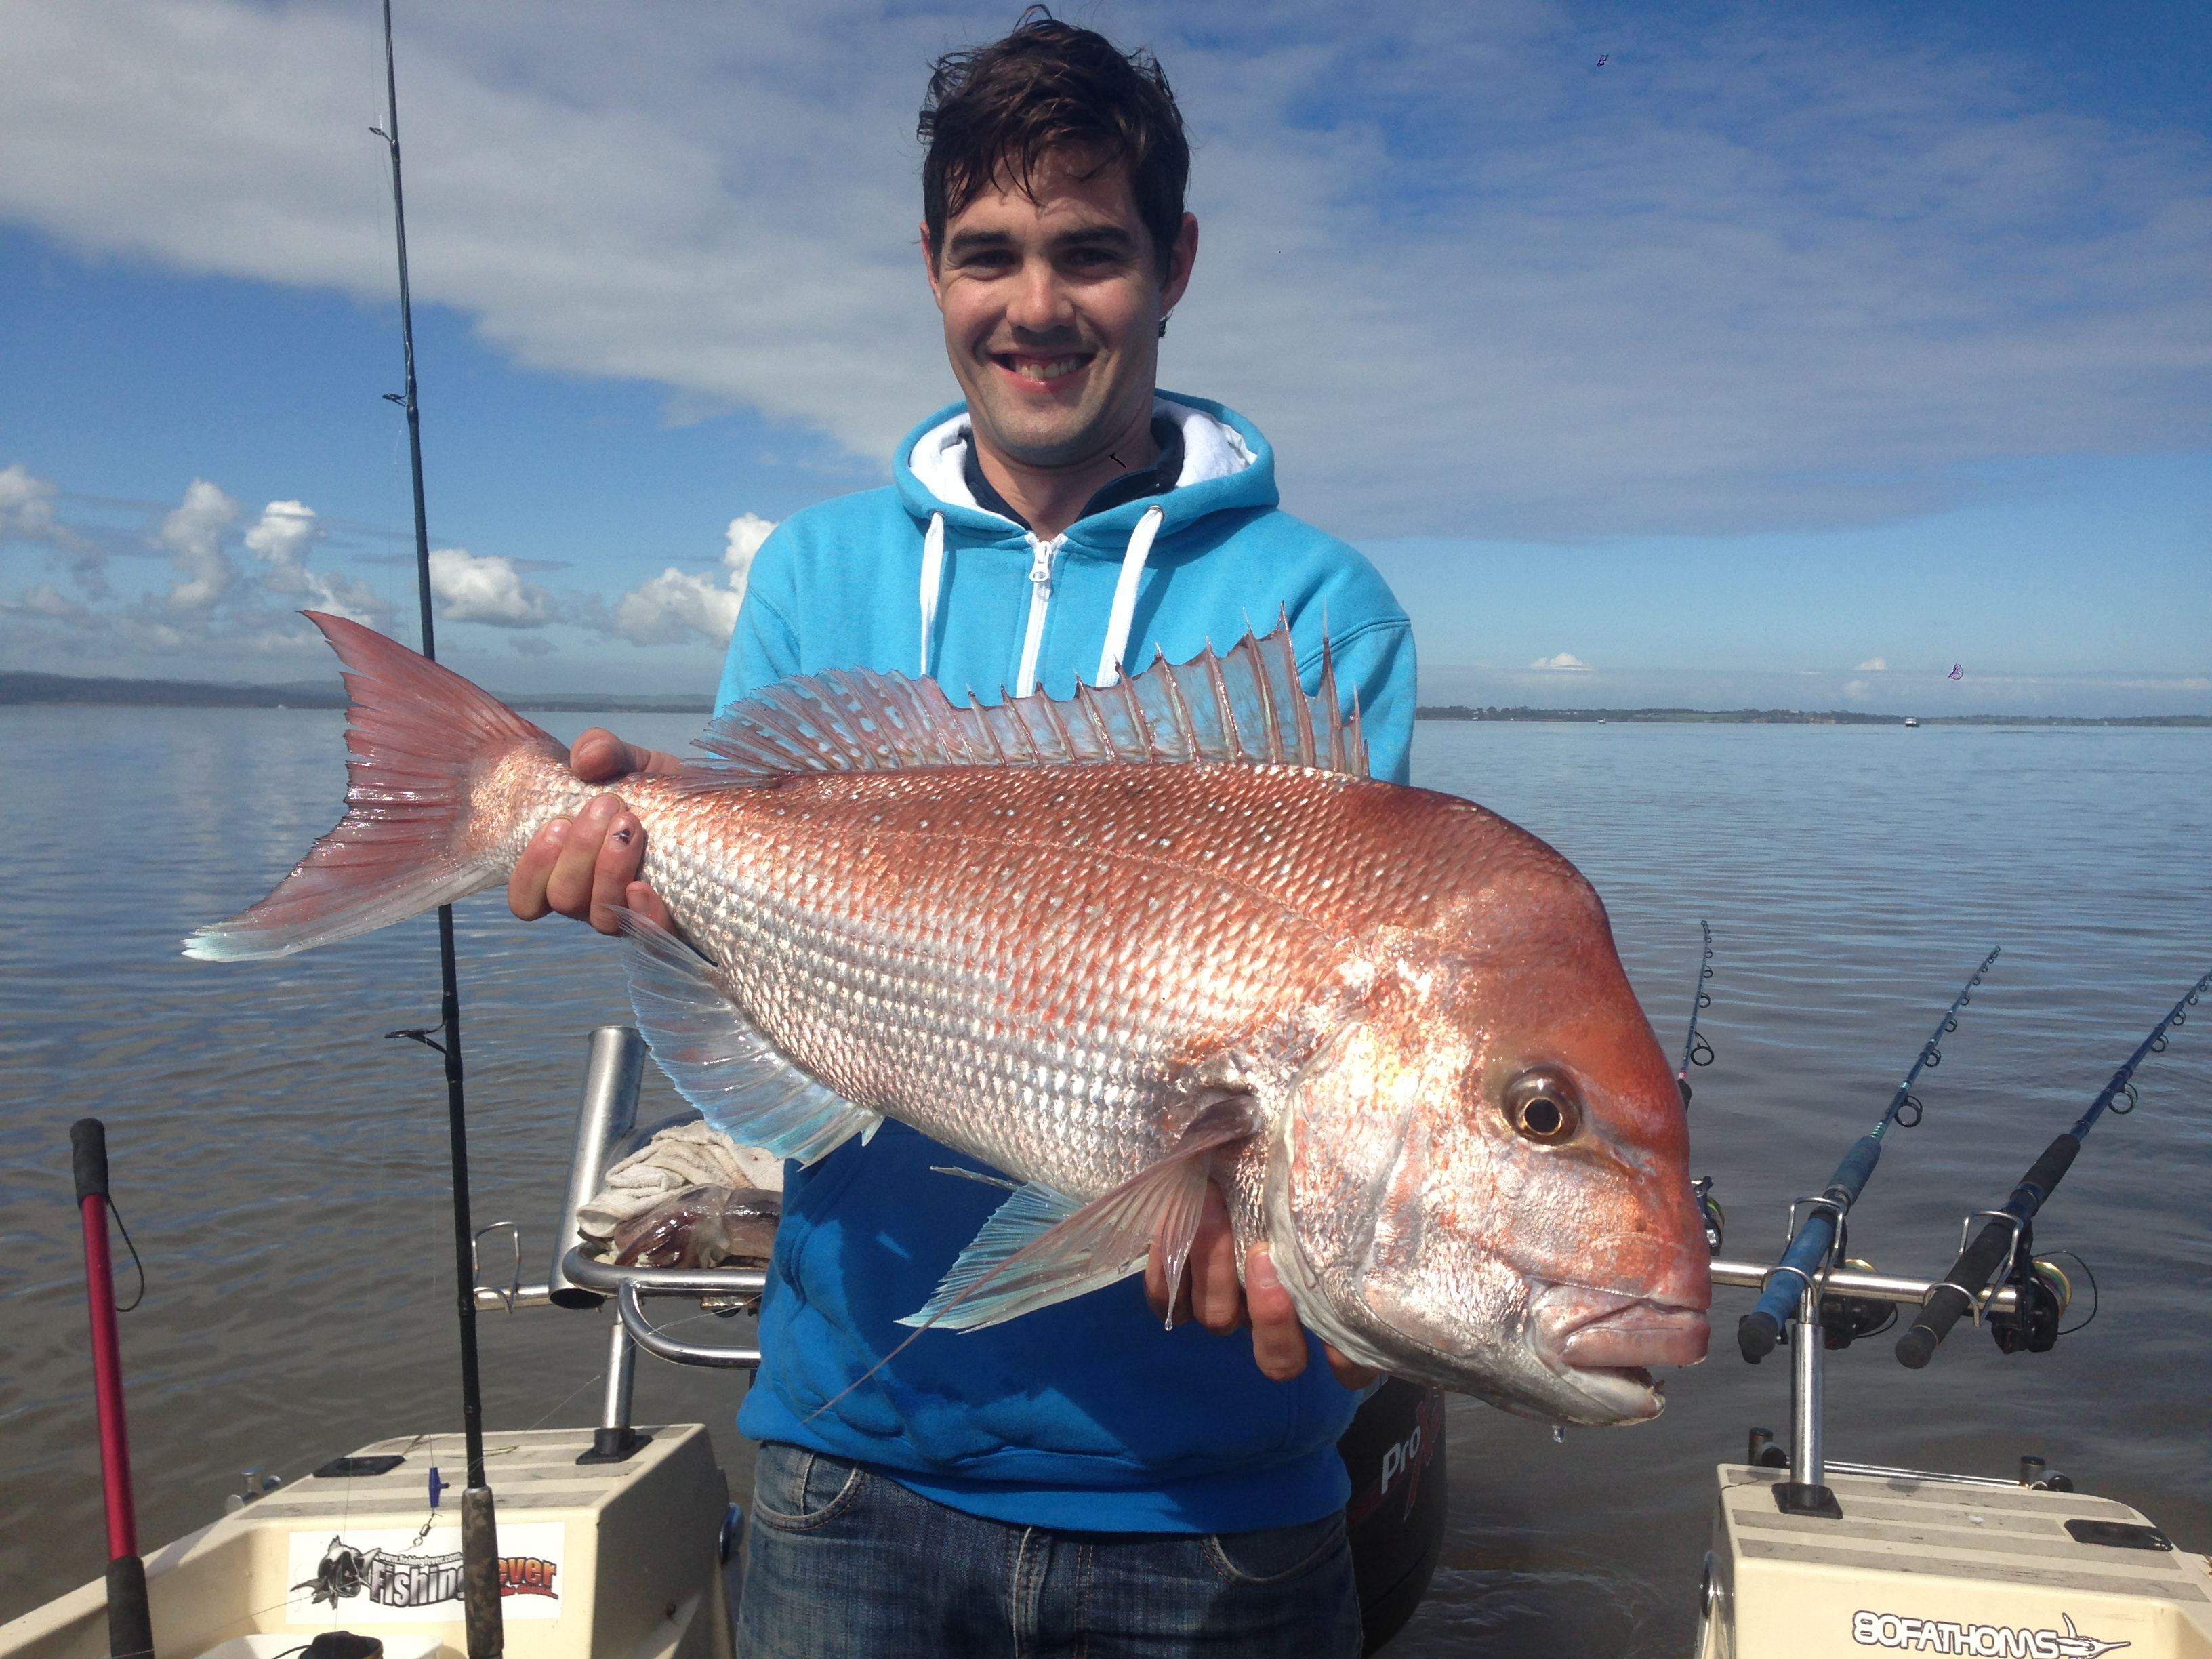 Andy Donegan with a nice early season snapper taken on the Bluegum point GPS mark